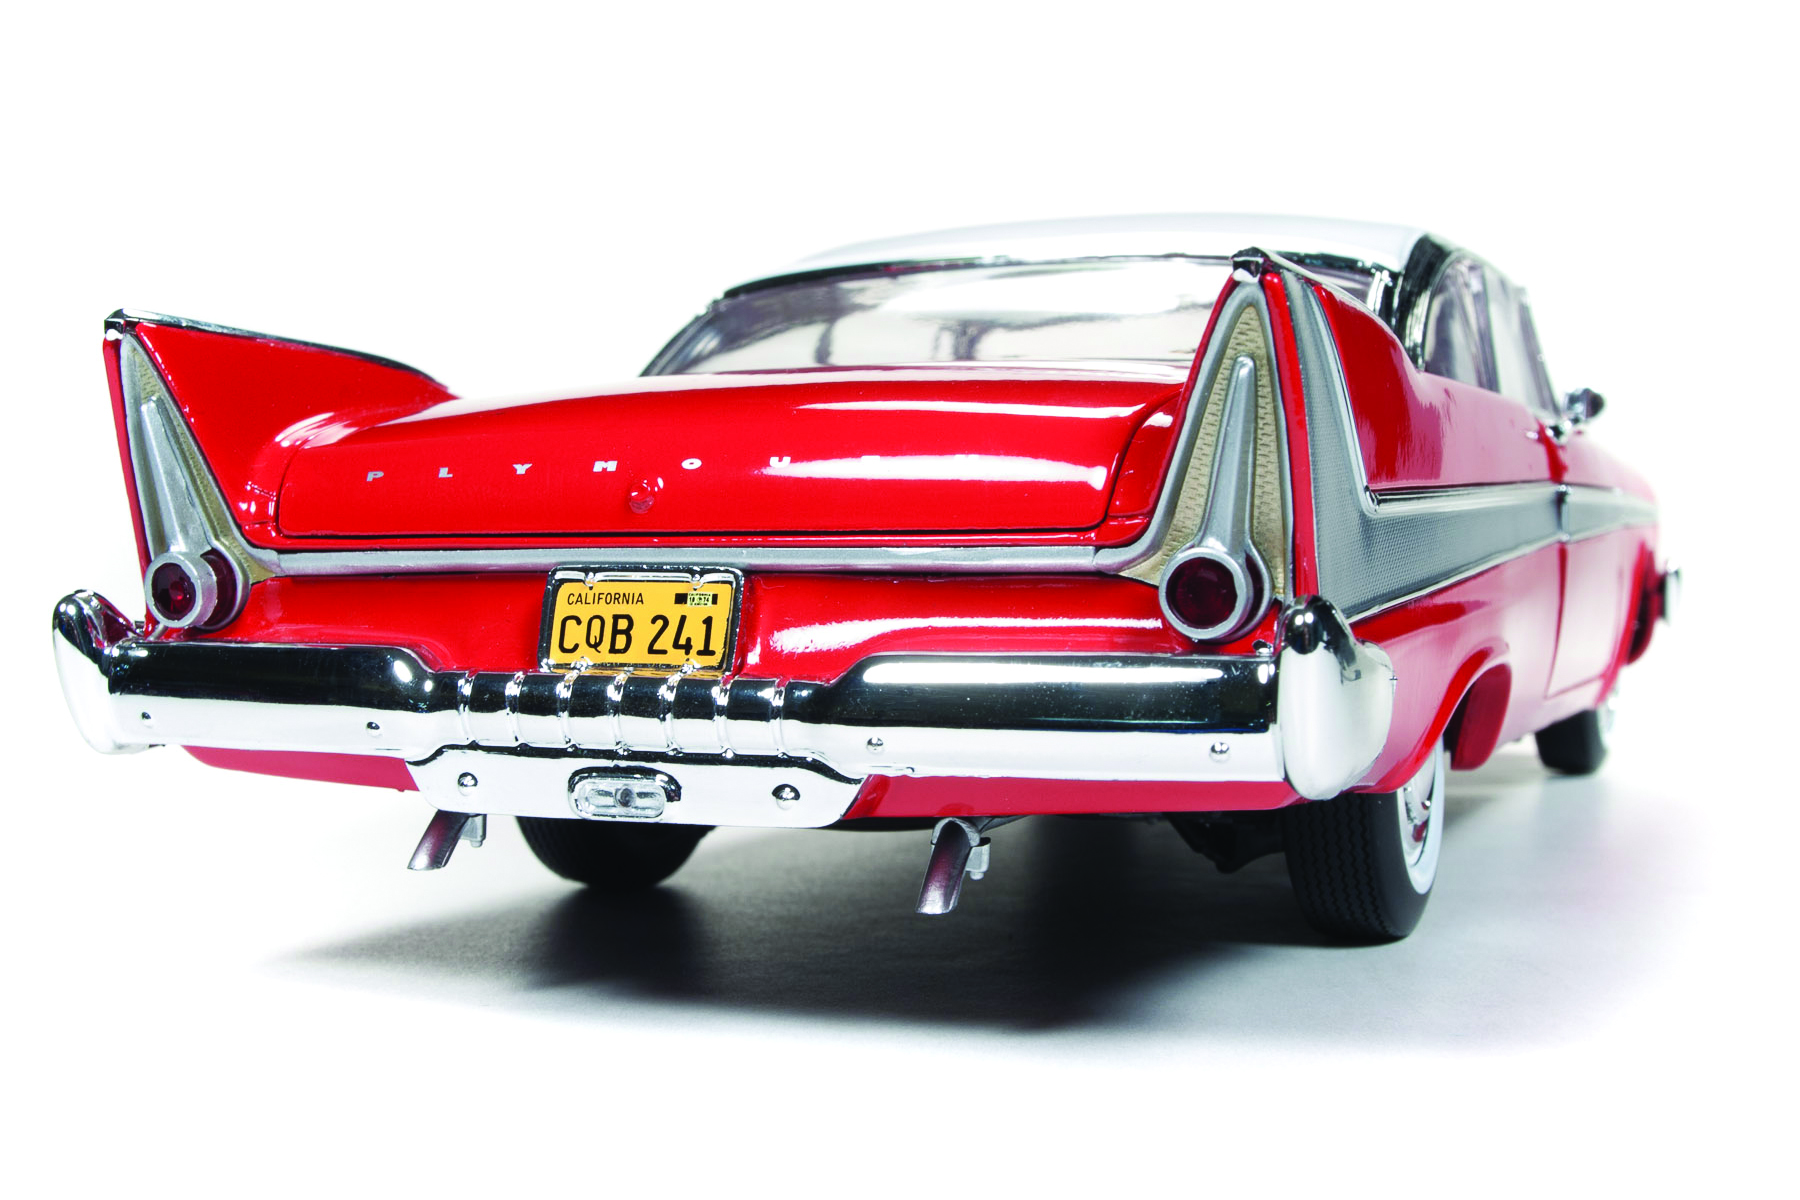 1958 Plymouth Fury Backgrounds on Wallpapers Vista